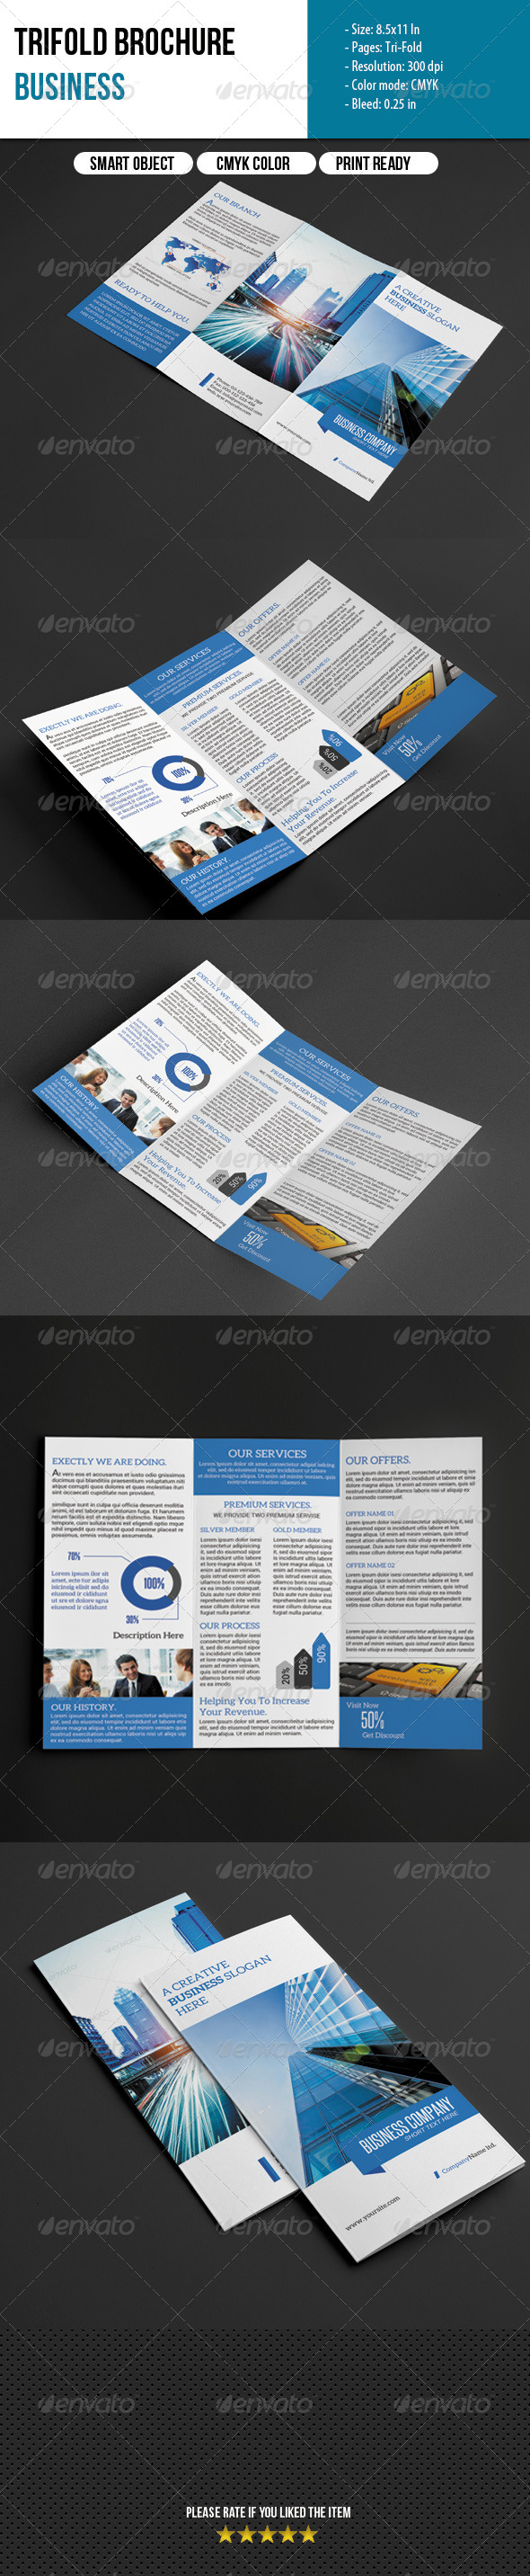 GraphicRiver Trifold Brochure-Business 6307451